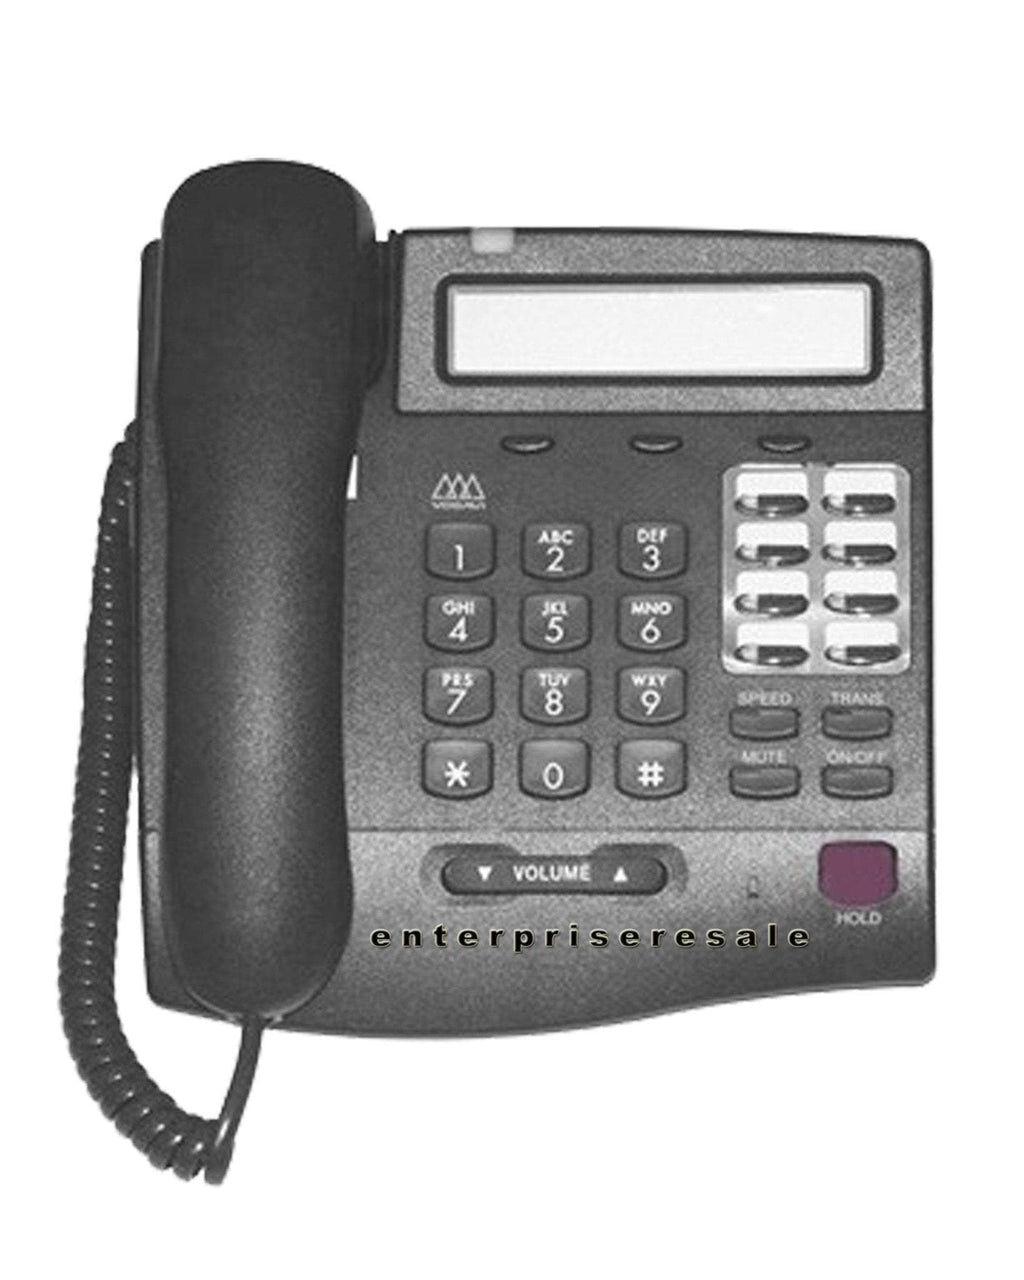 Vodavi Phone VODAVI Vertical 3012-71 8 Button Executive Key Display Phone